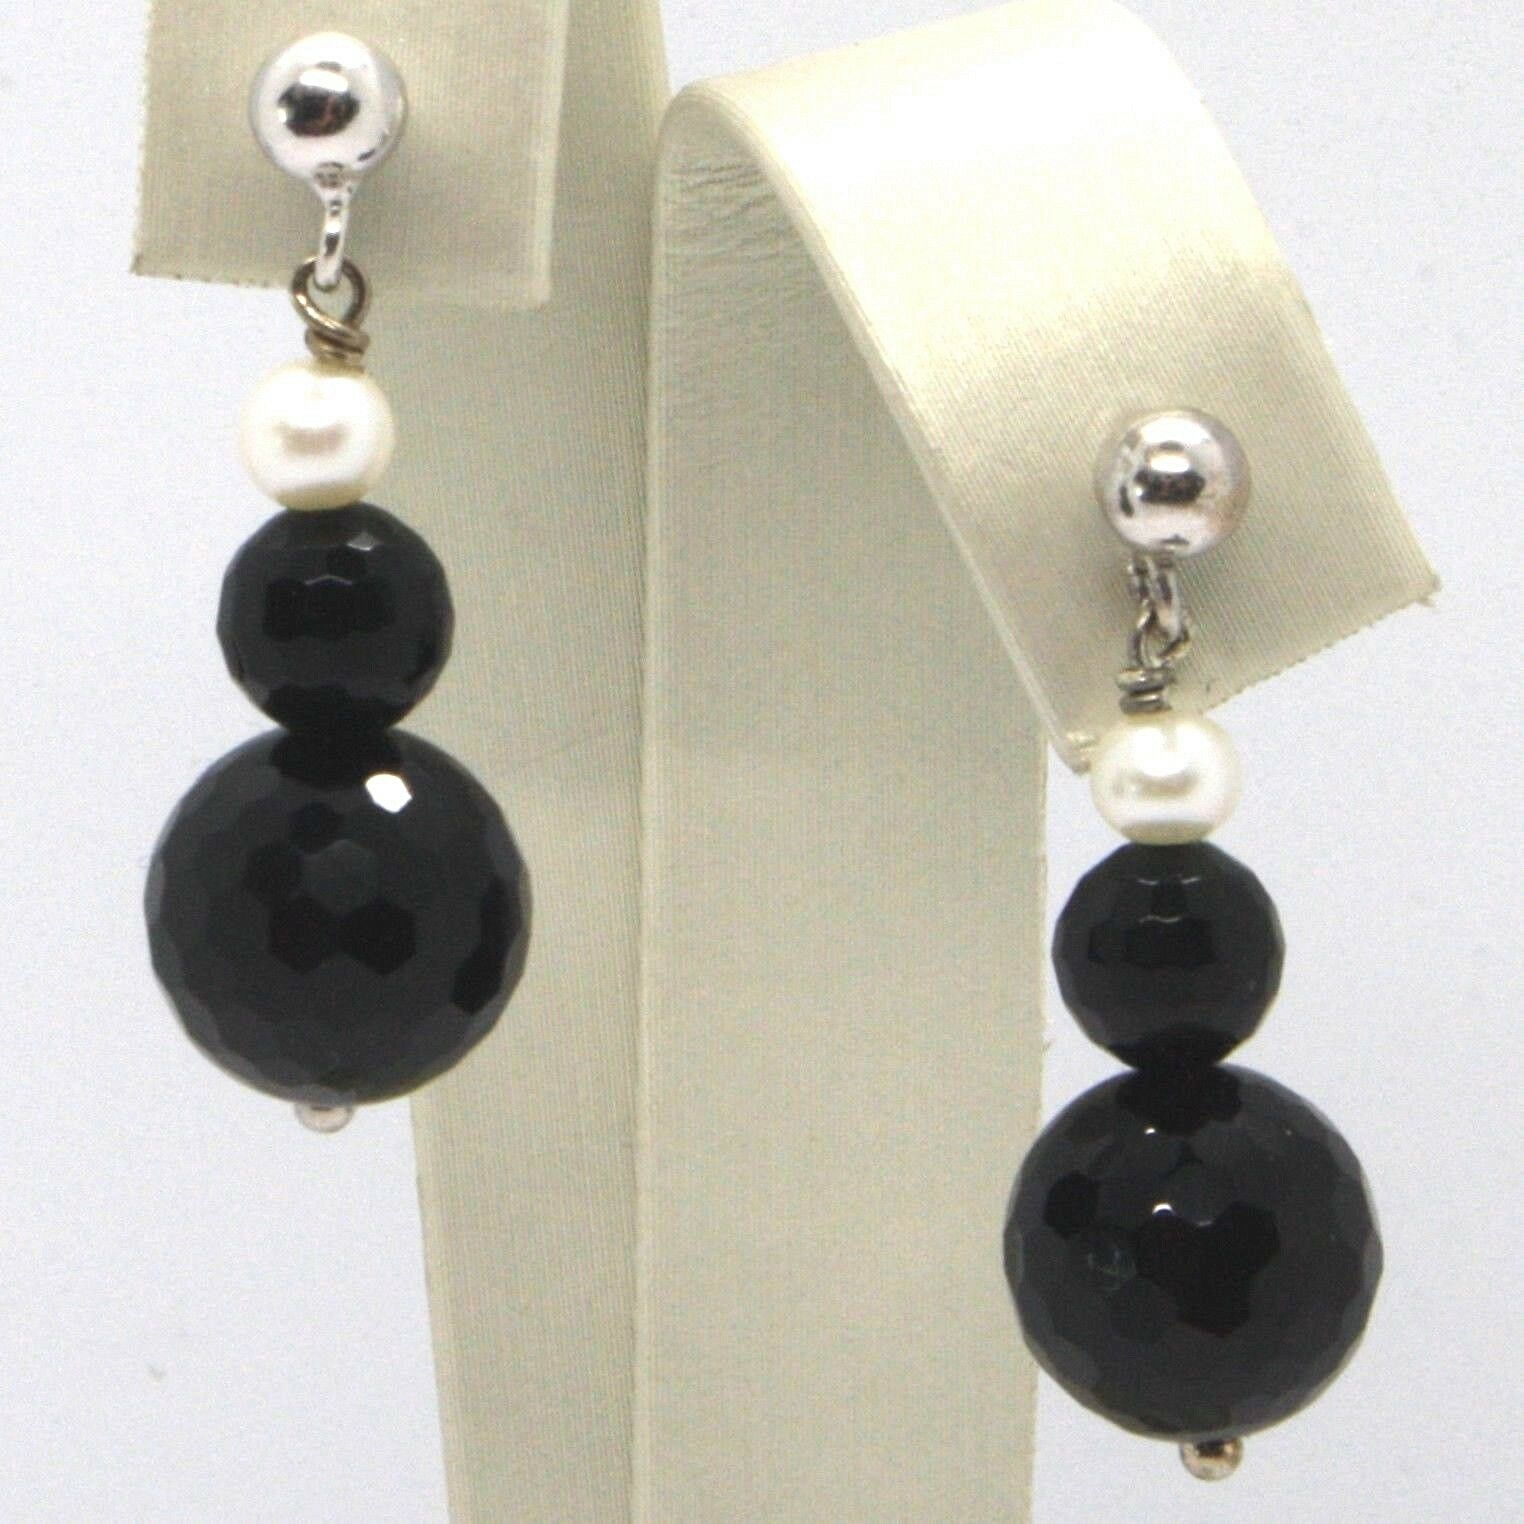 Drop Earrings White Gold 18K, White Pearls, Onyx Black FACET